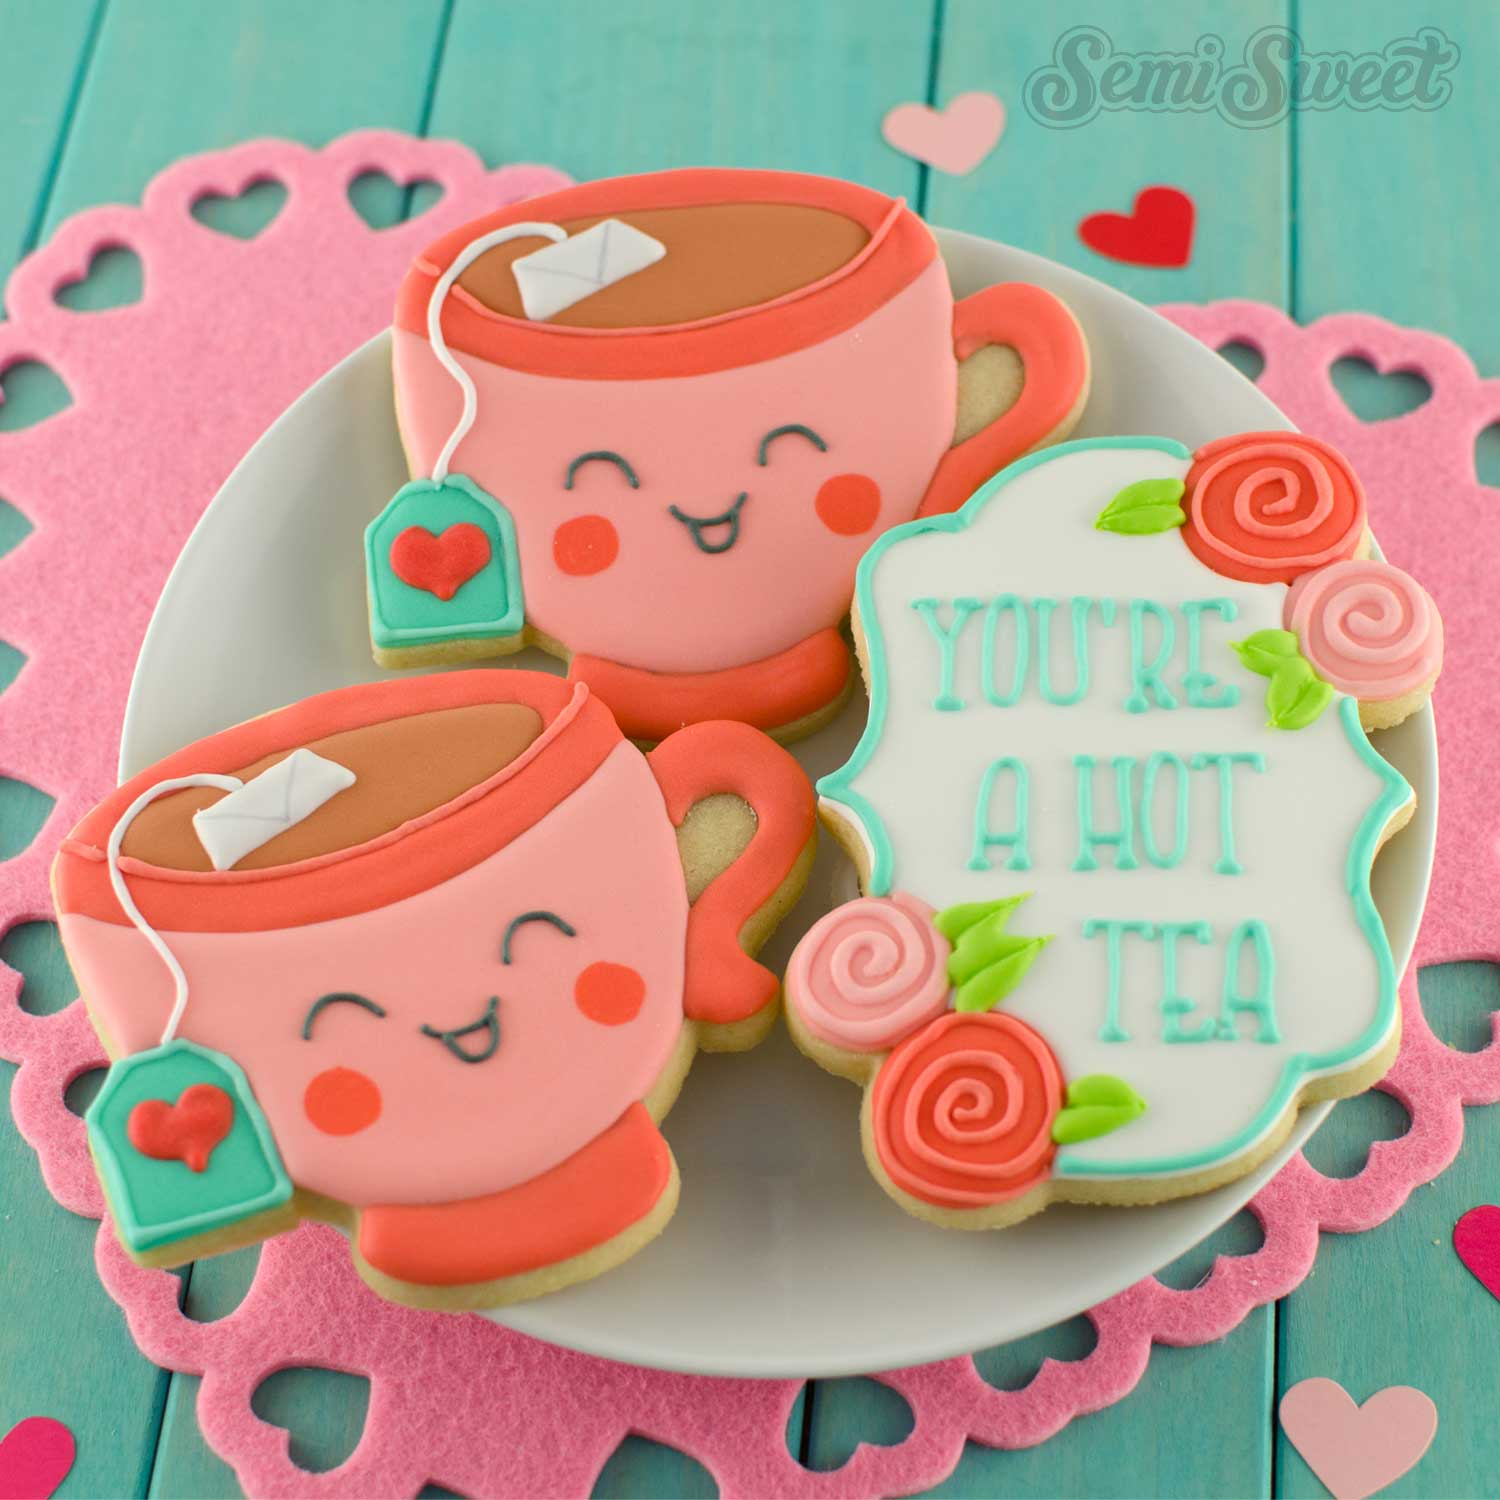 How to Make Teacup Cookies